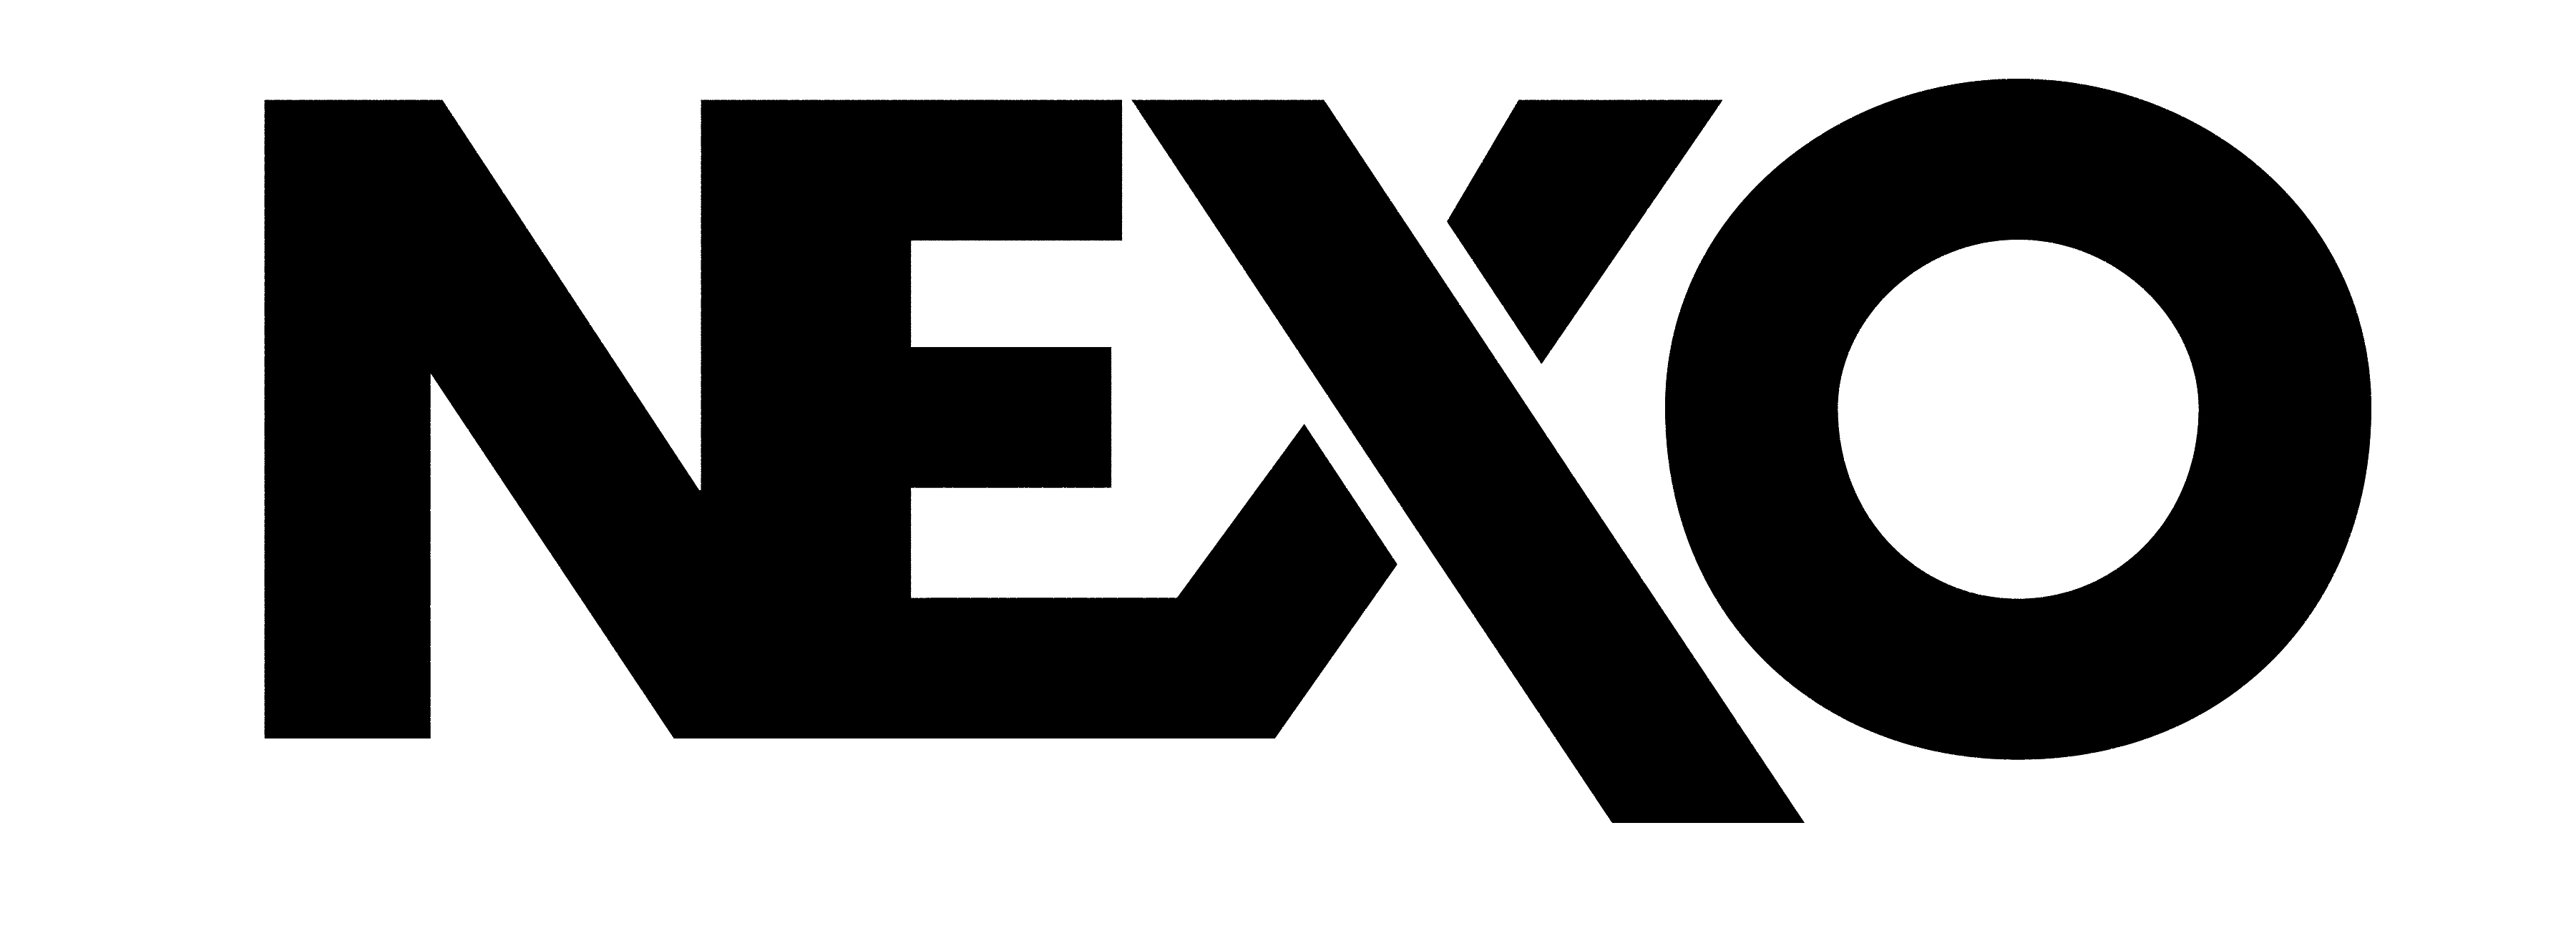 NEXO-logo_www.concertsound.co.uk